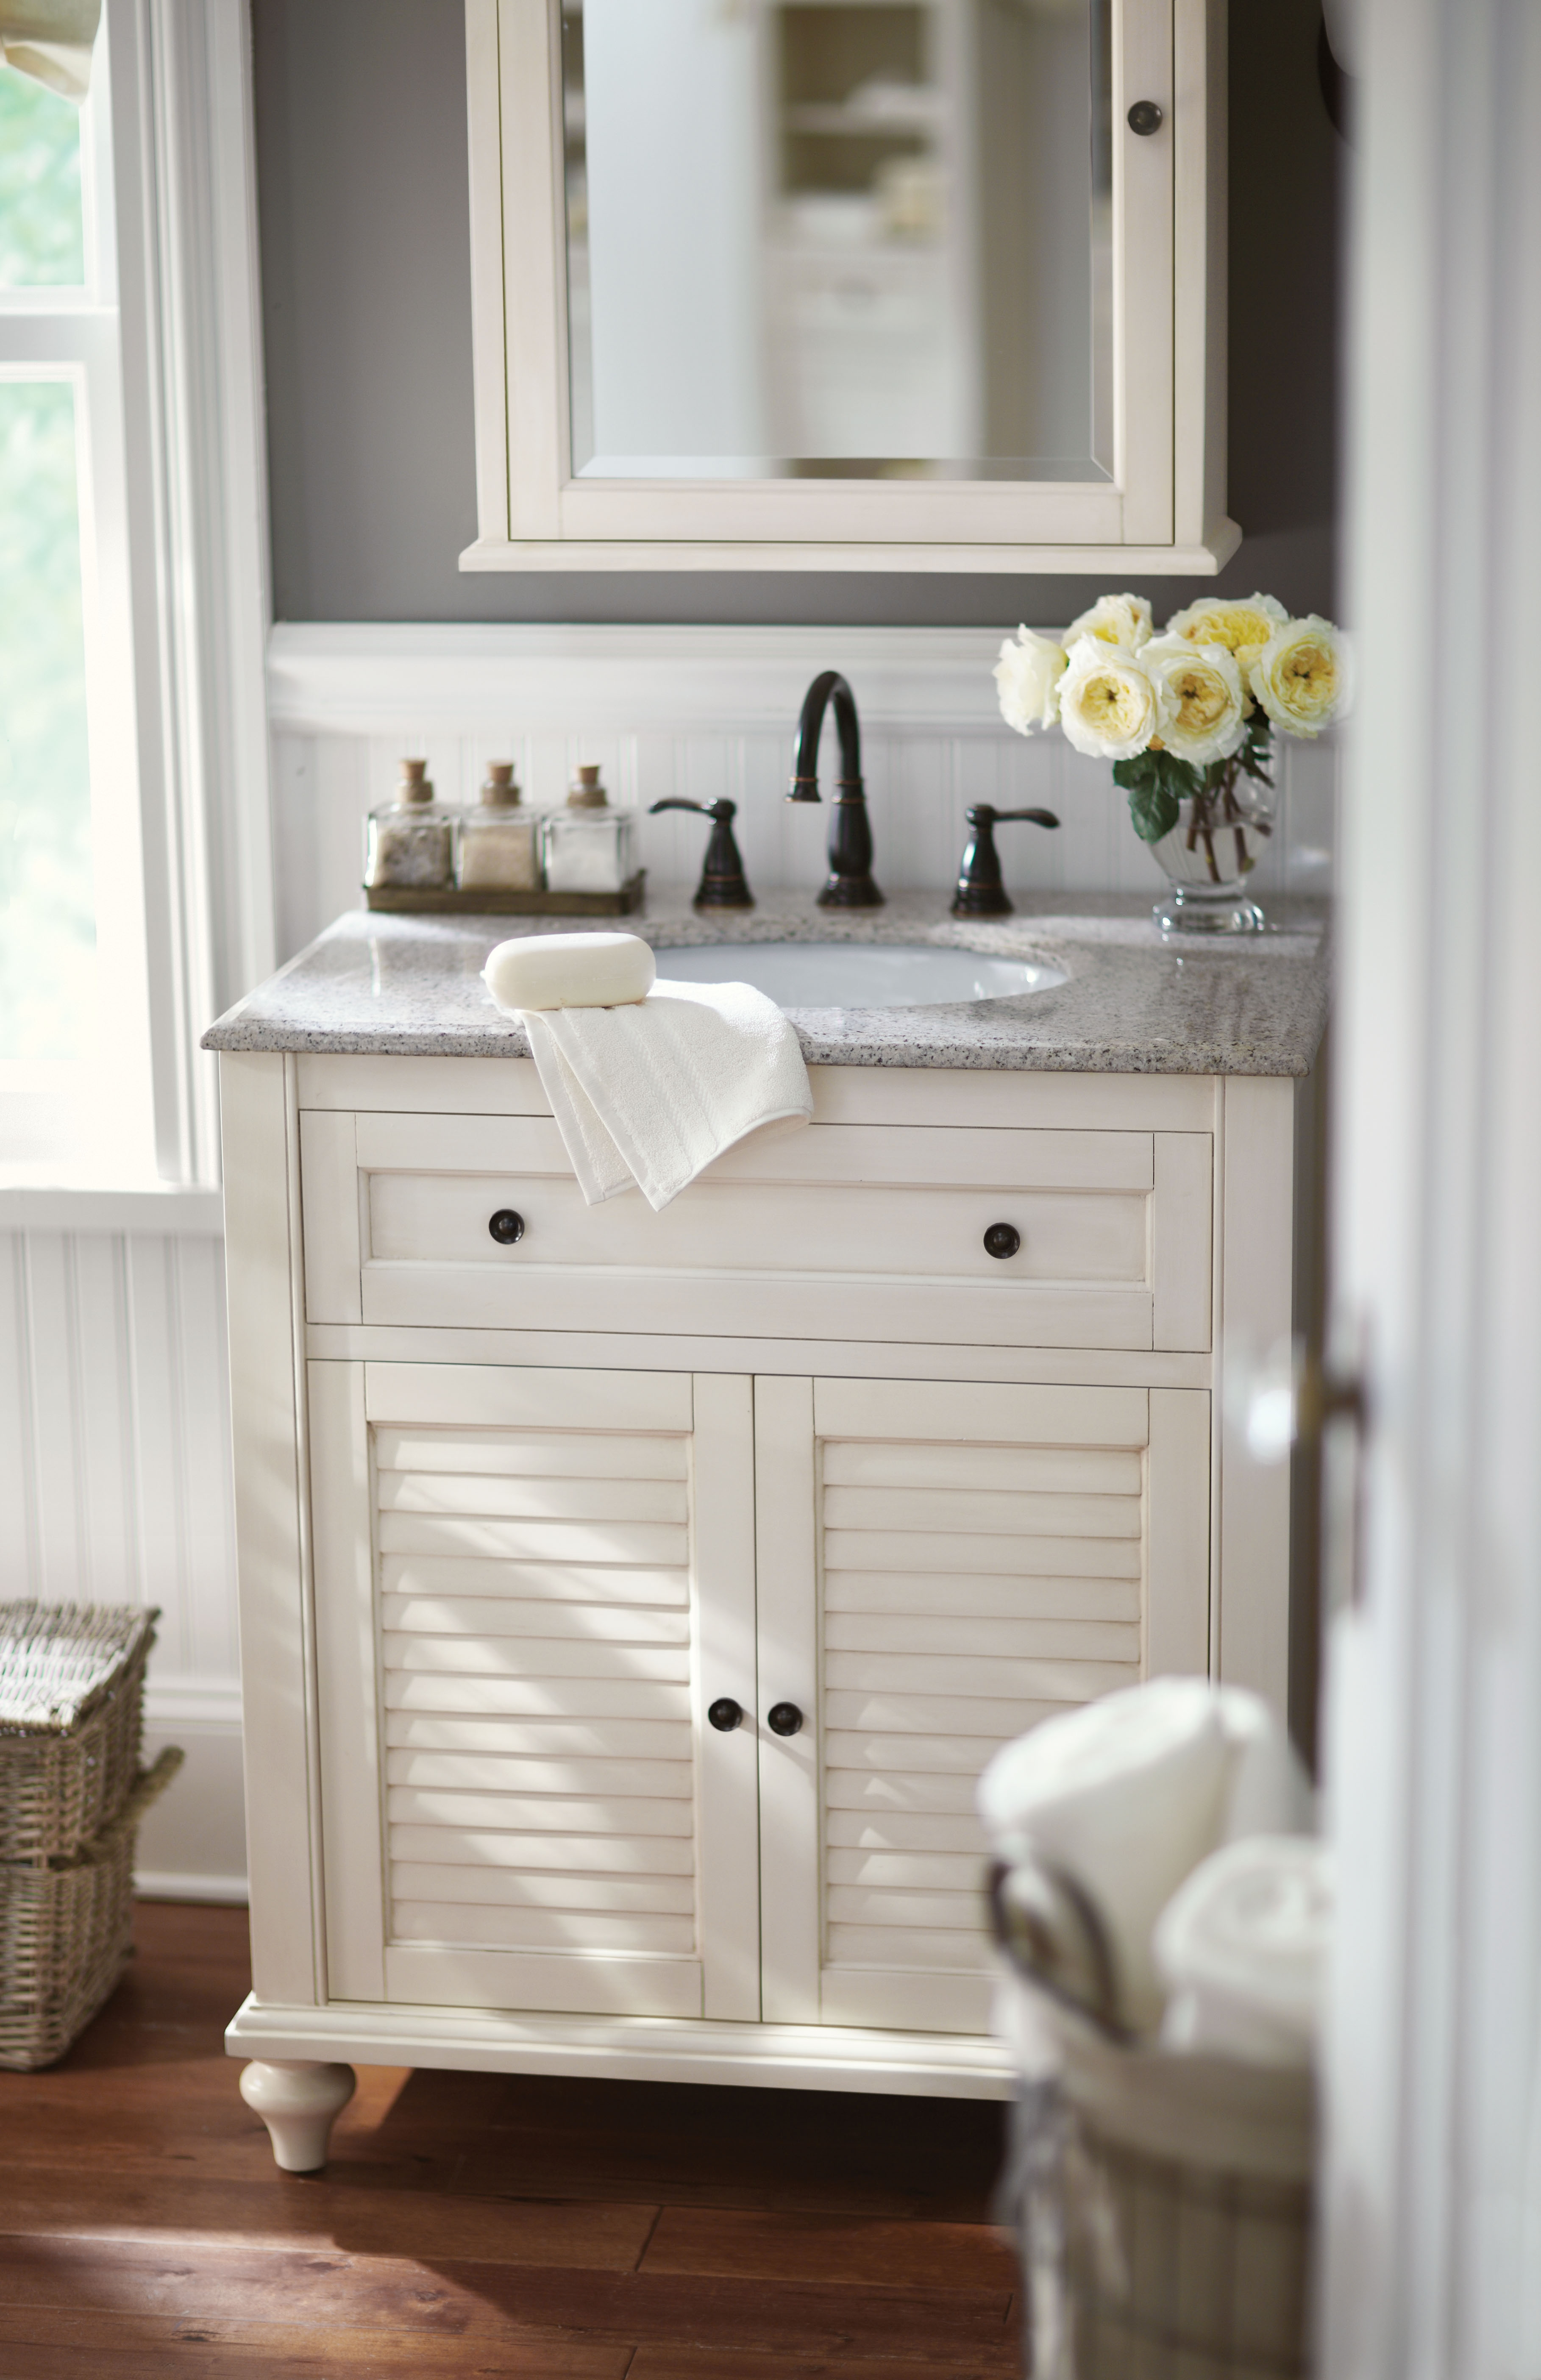 Small Space Makeup Vanity Bathroom Design Plans Ideas Pinterest Make